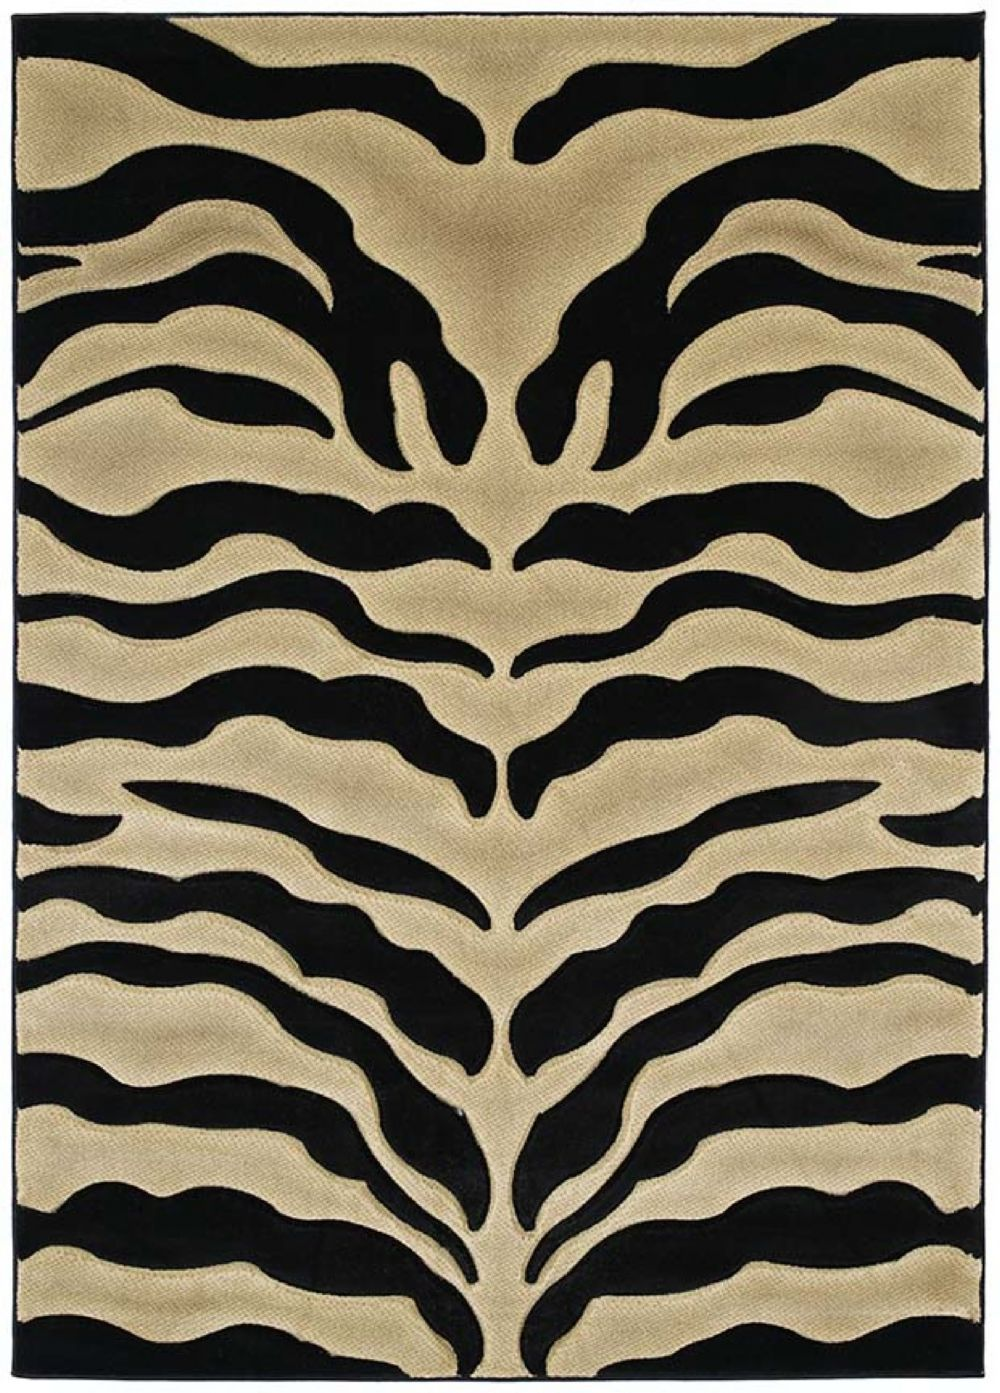 united weavers contours animal inspirations area rug collection